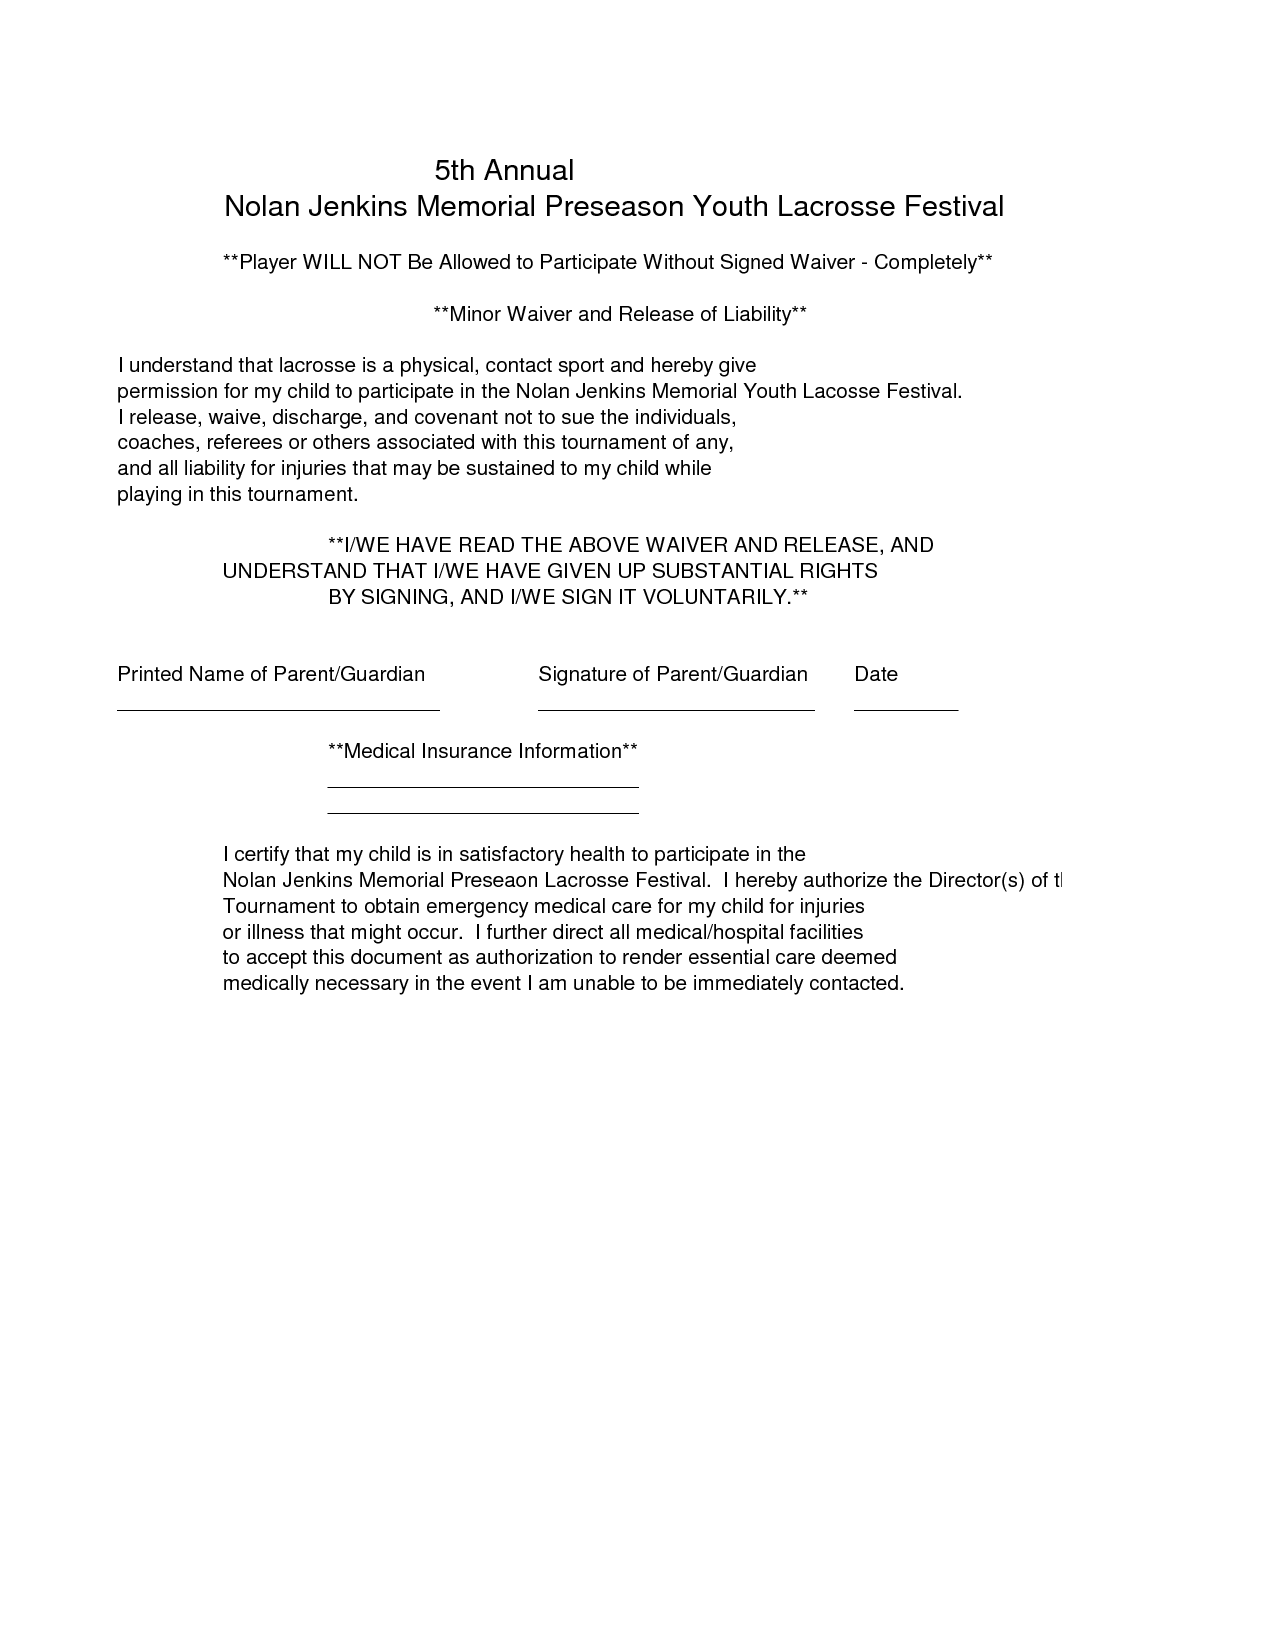 Waiver Of Liability Sample Swifterco liability waiver – Simple Liability Waiver